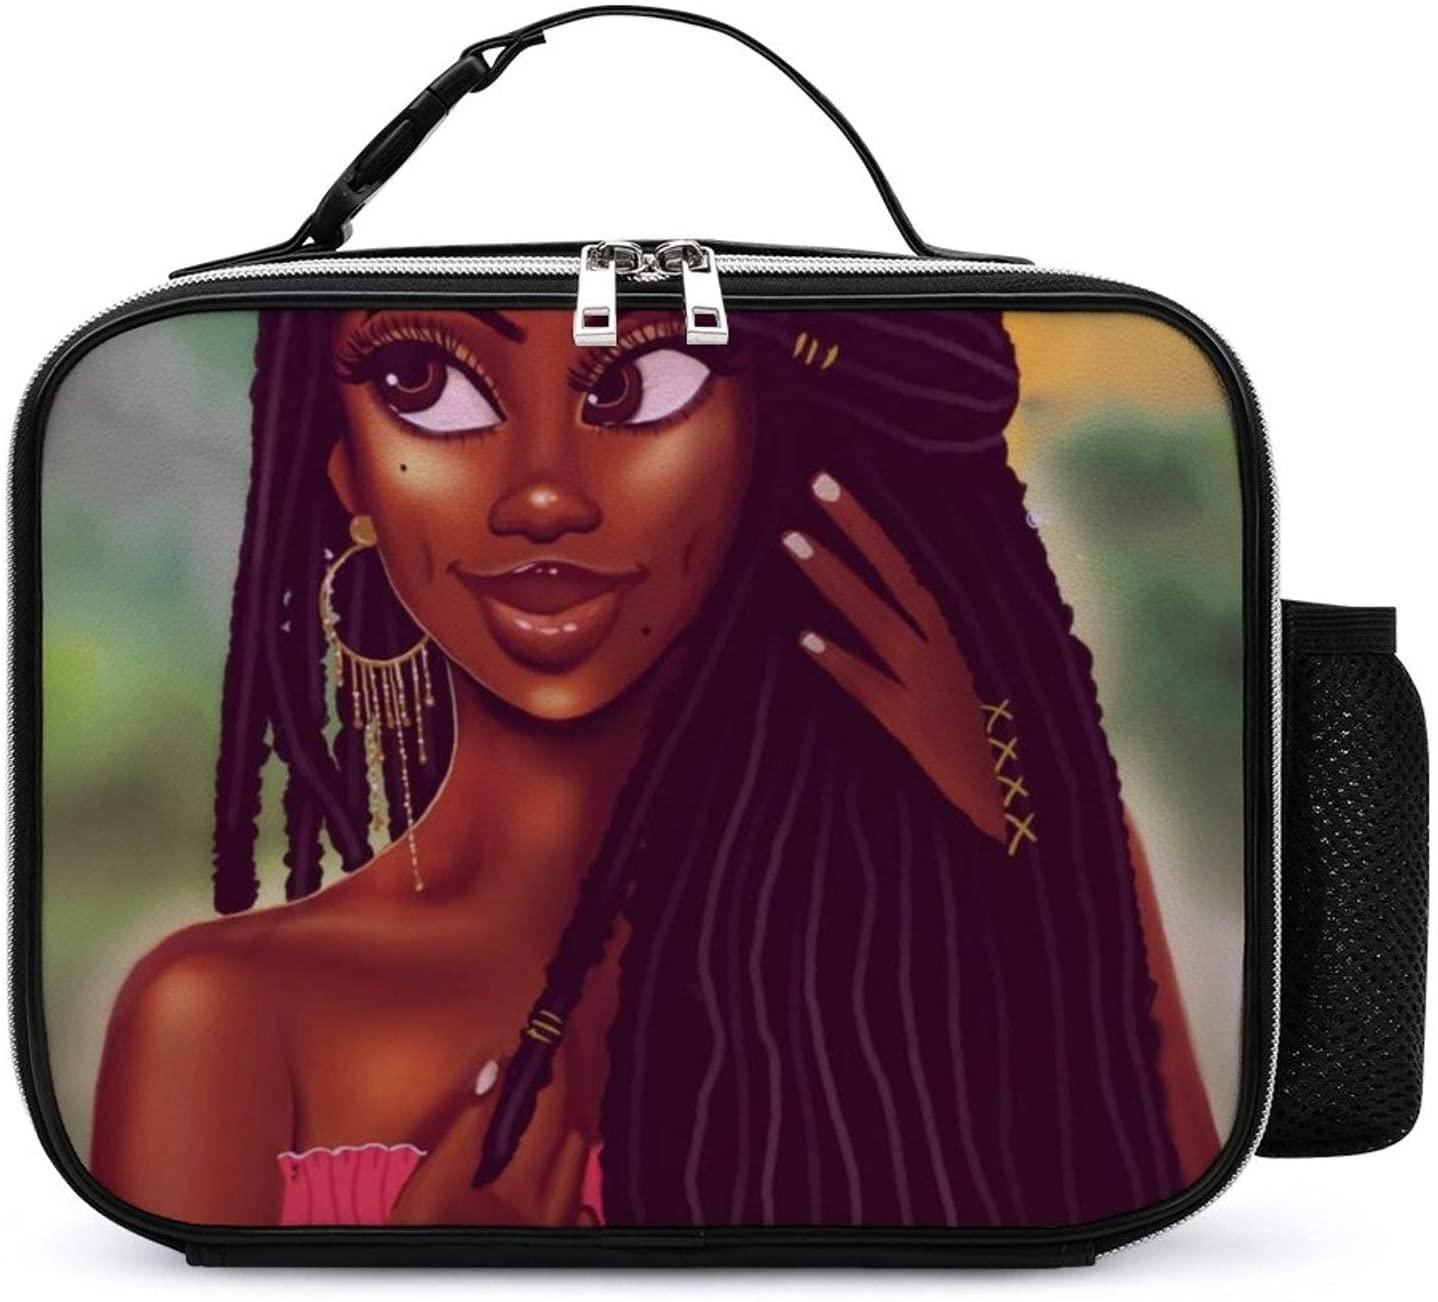 NiYoung Lunch Bag Totebox Moisture Resistant Premium Lunch Container Reusable Gourmet Tote Pouch Organizer African American Women Girl Painting Grocery Container for Women Men Kids Office Work